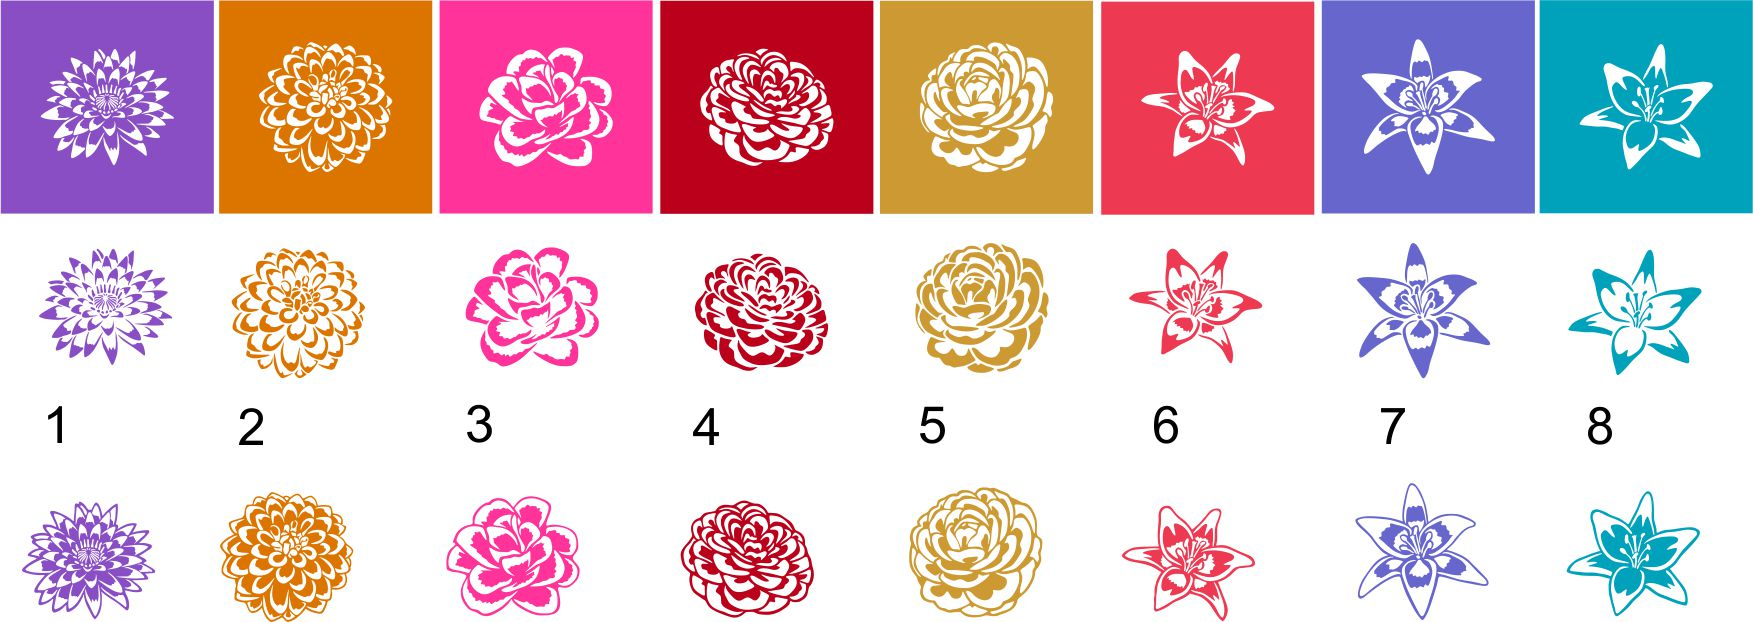 Flowers and Stencil SVG files for Silhouette and Cricut. example image 3